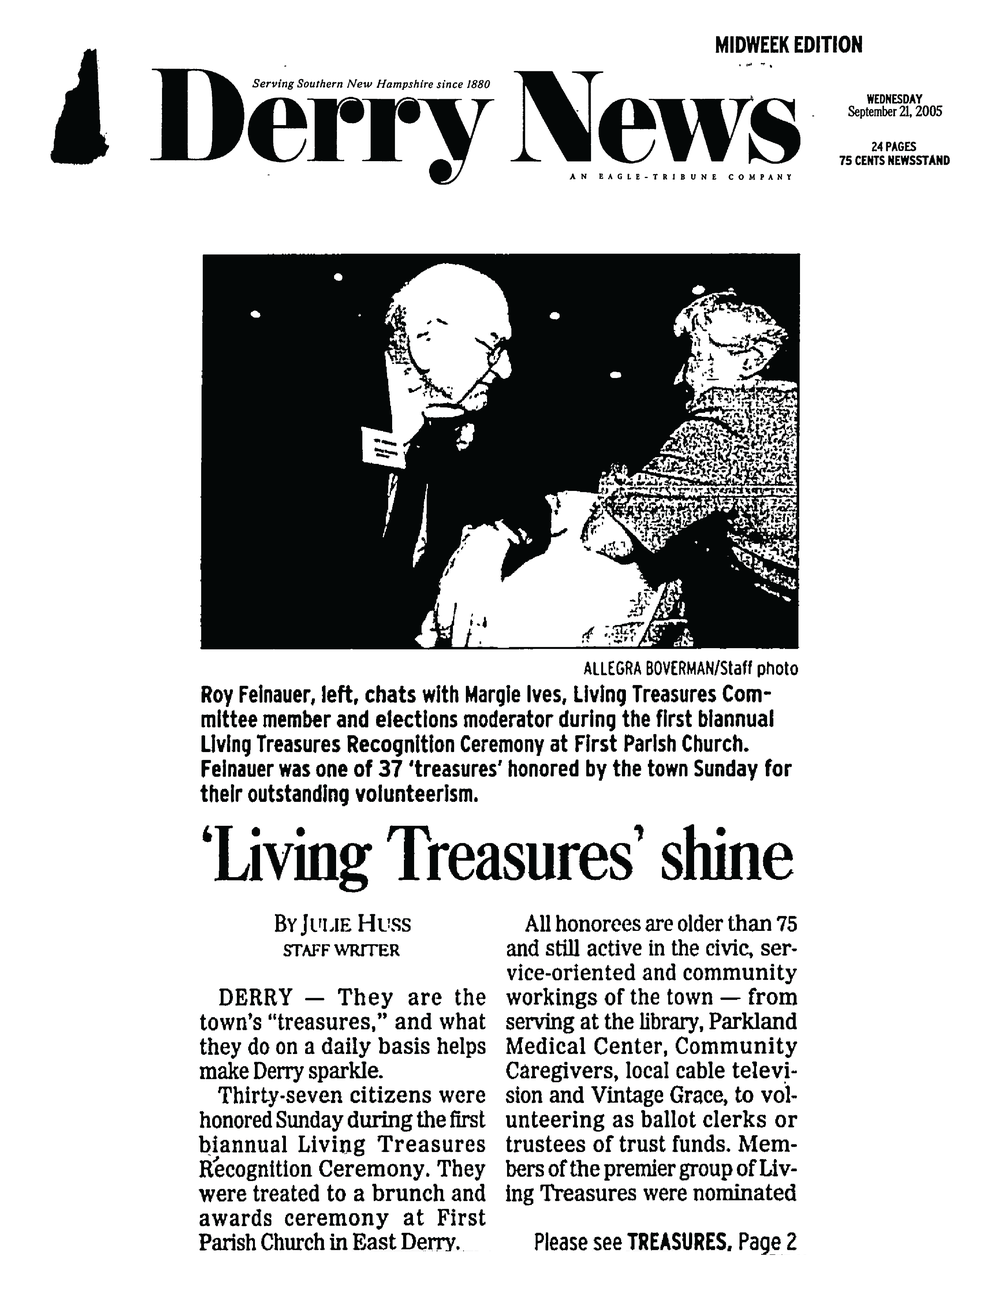 - Click image to see an article on the 2005 Living Treasures luncheon